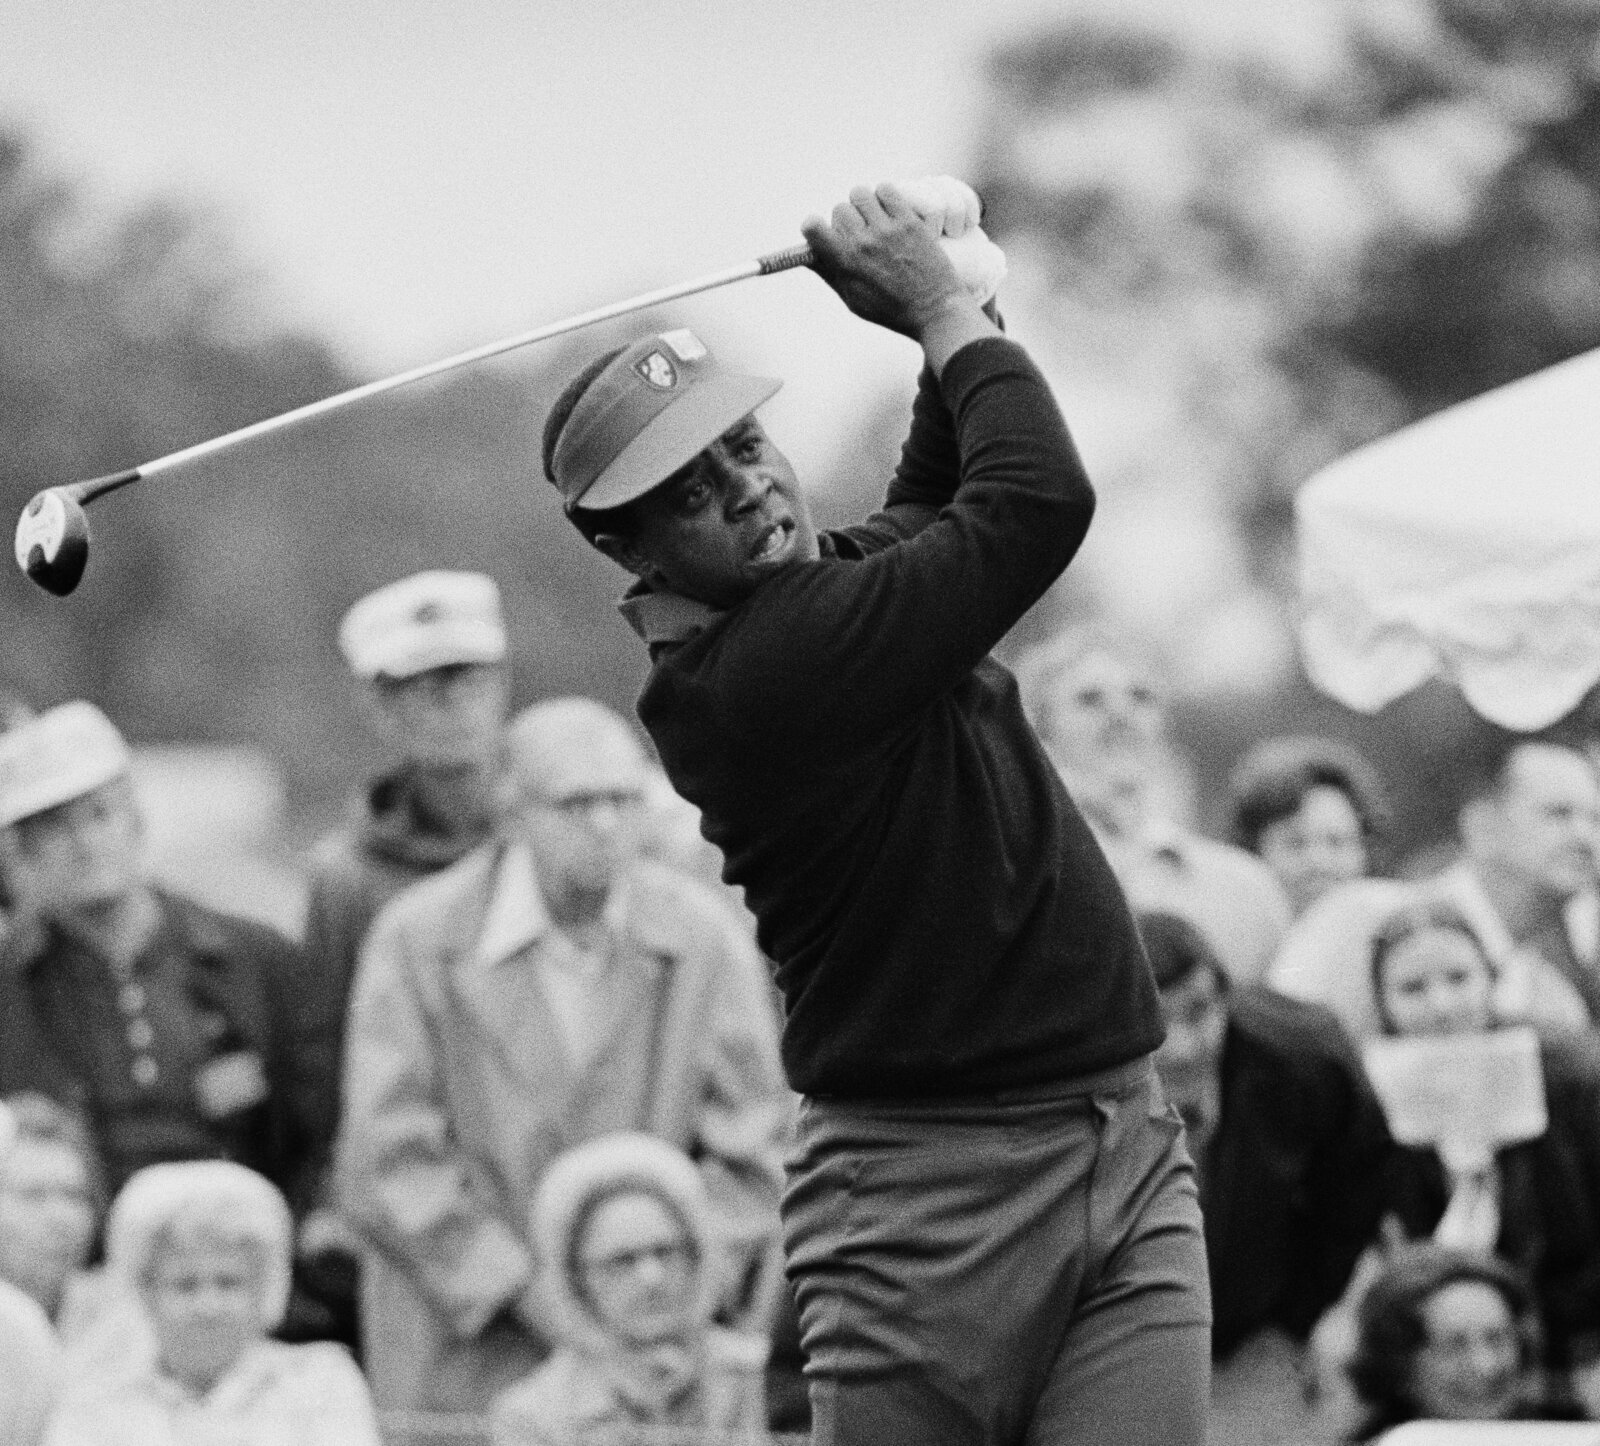 Lee Elder, the first Black player to qualify for and play in the Masters, tees off at the Augusta National Golf Club in April 1975.